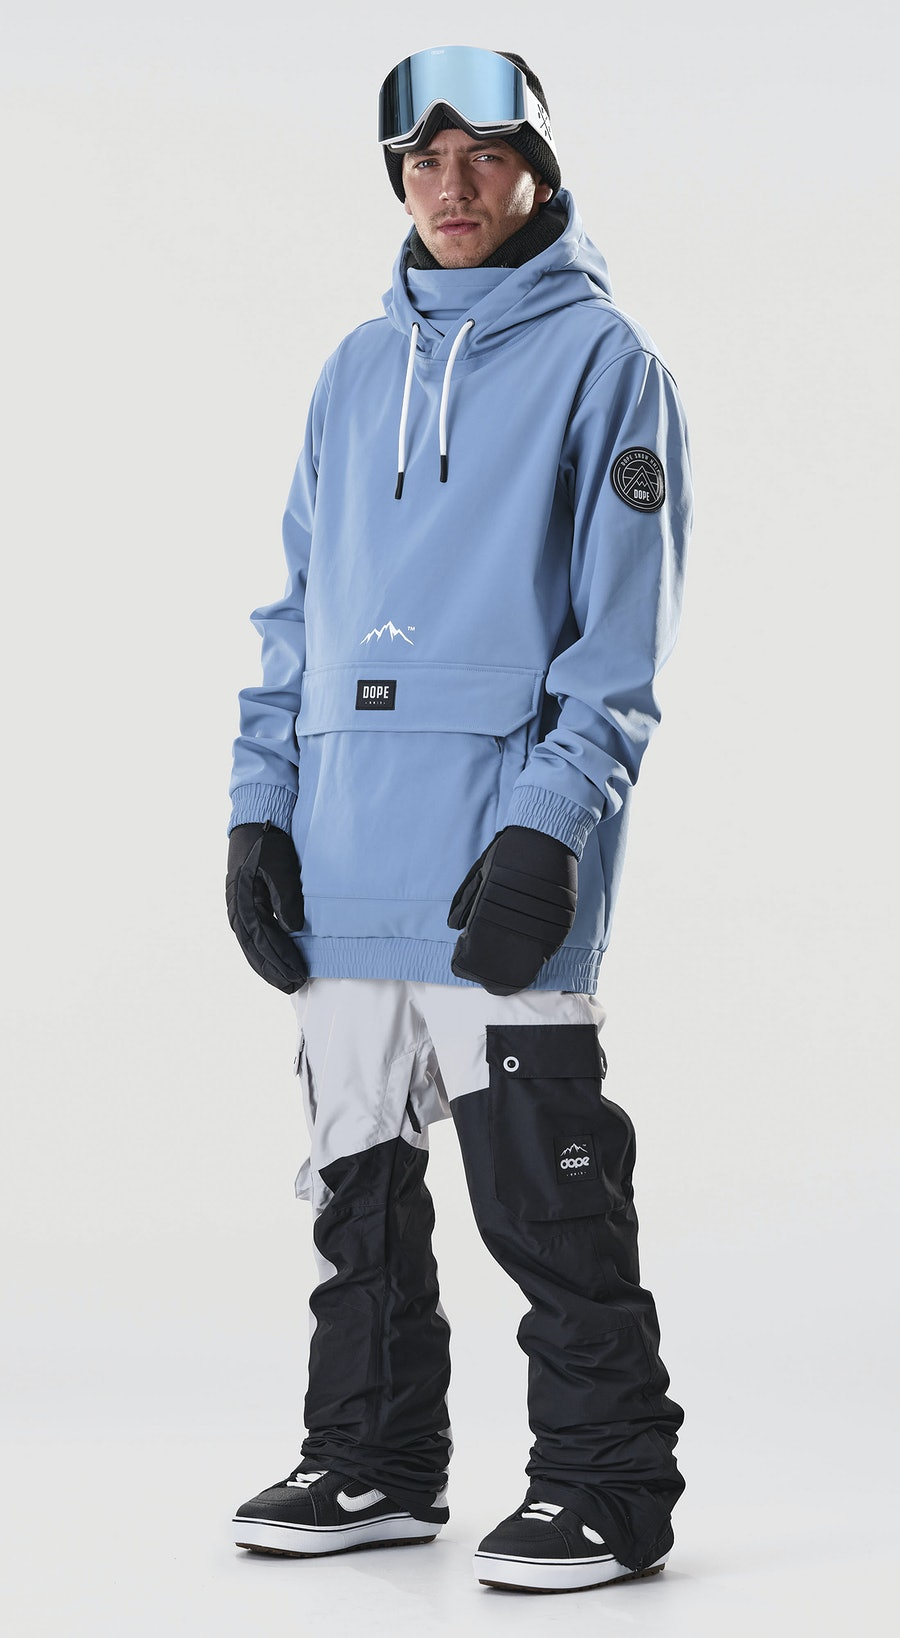 Dope Wylie Patch Blue Steel Snowboardkleidung Multi